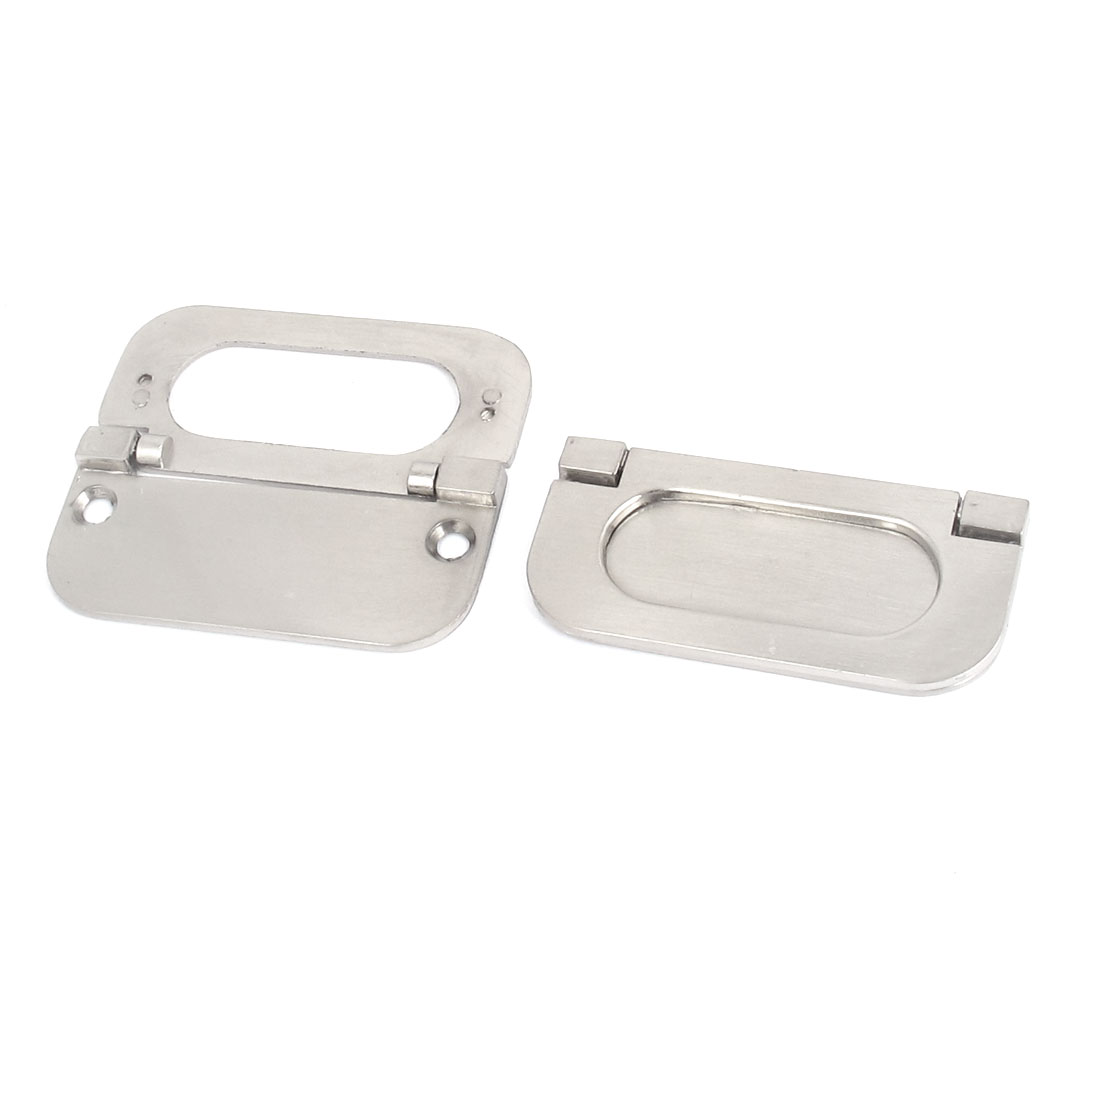 63mm Fixing Distance Cabinet Metal Rectangle Pull Handle Silver Tone 2 Pcs